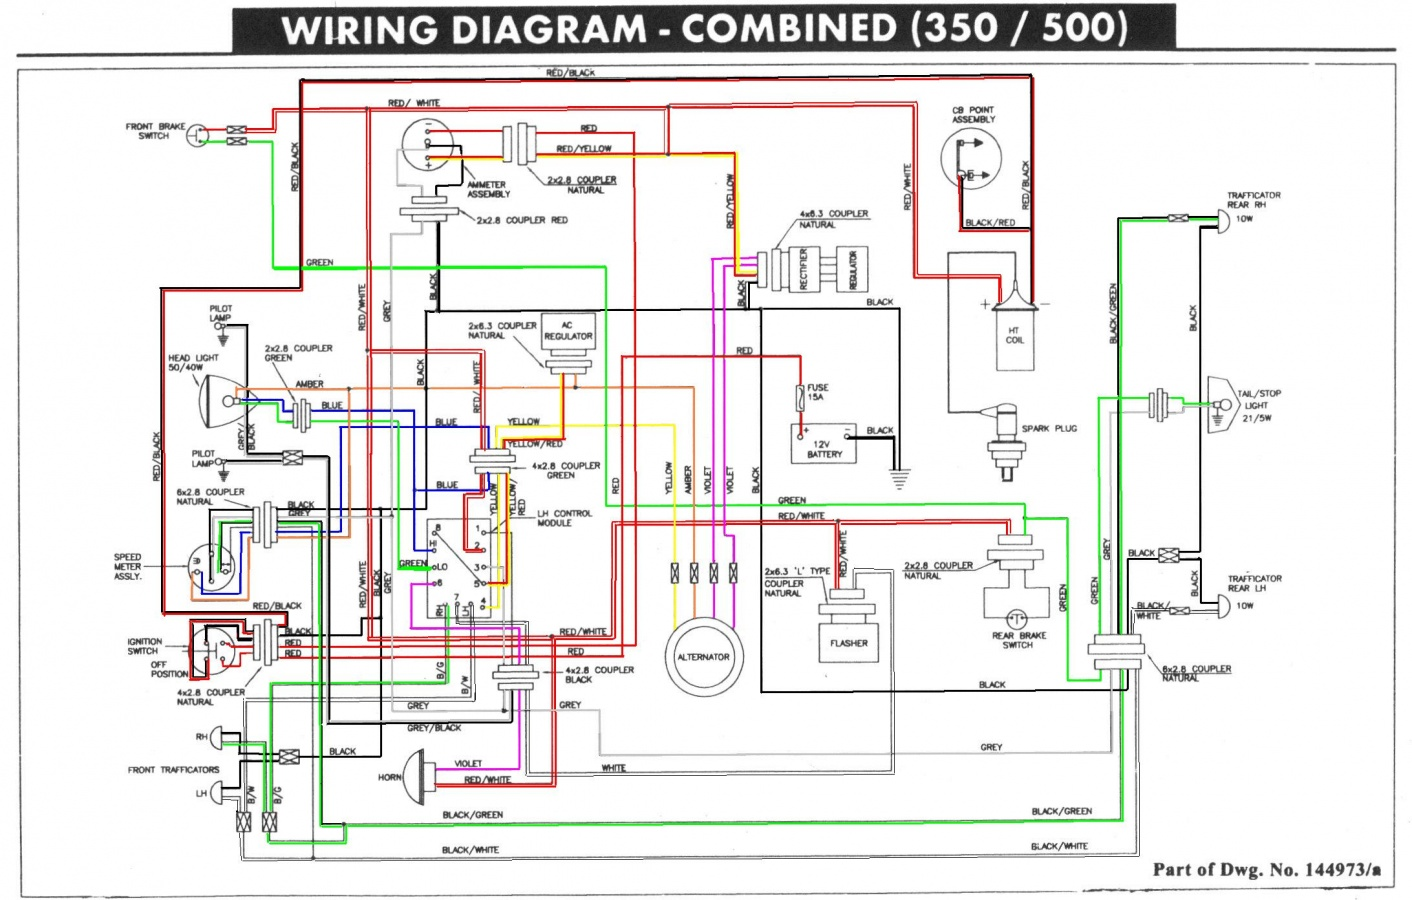 hight resolution of royal enfield wiring diagram basic electronics wiring diagram royal enfield classic 500 efi wiring diagram royal enfield bullet 500 wiring diagram